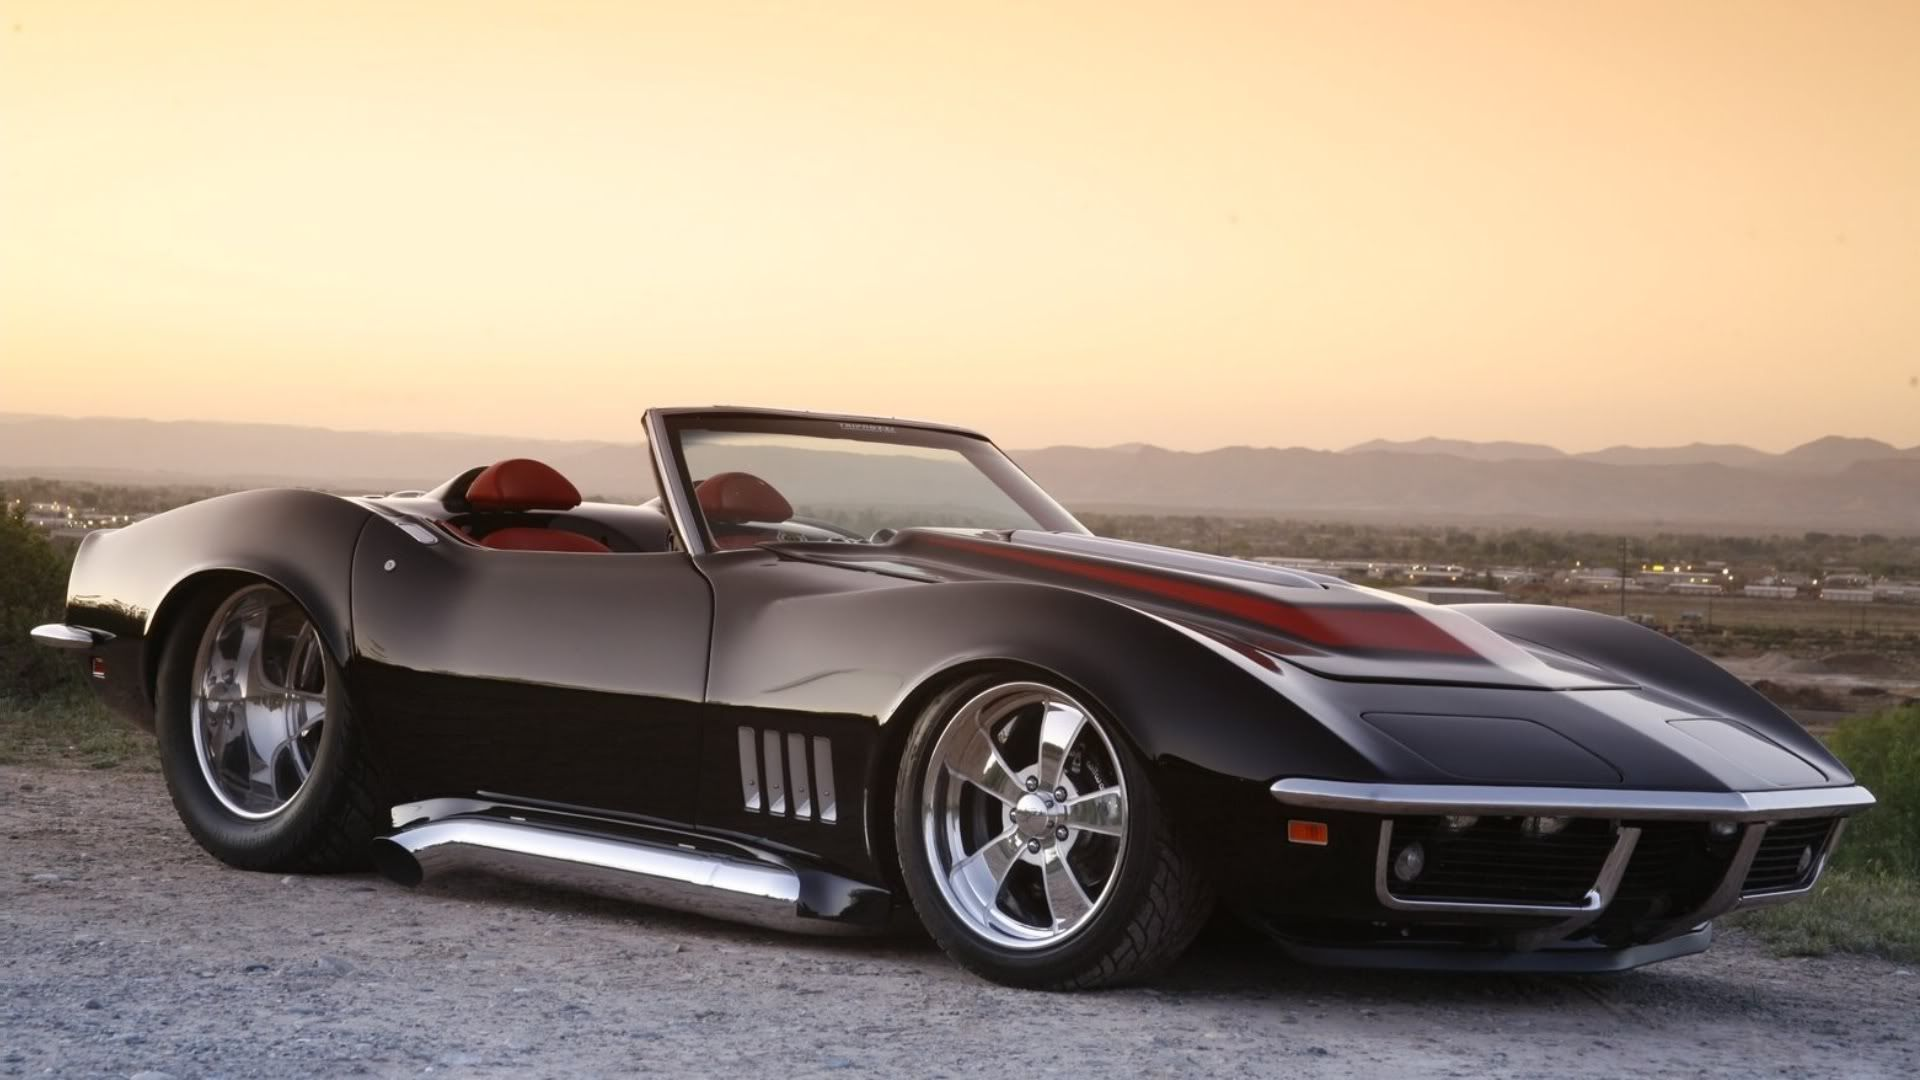 Custom Corvette Wallpapers